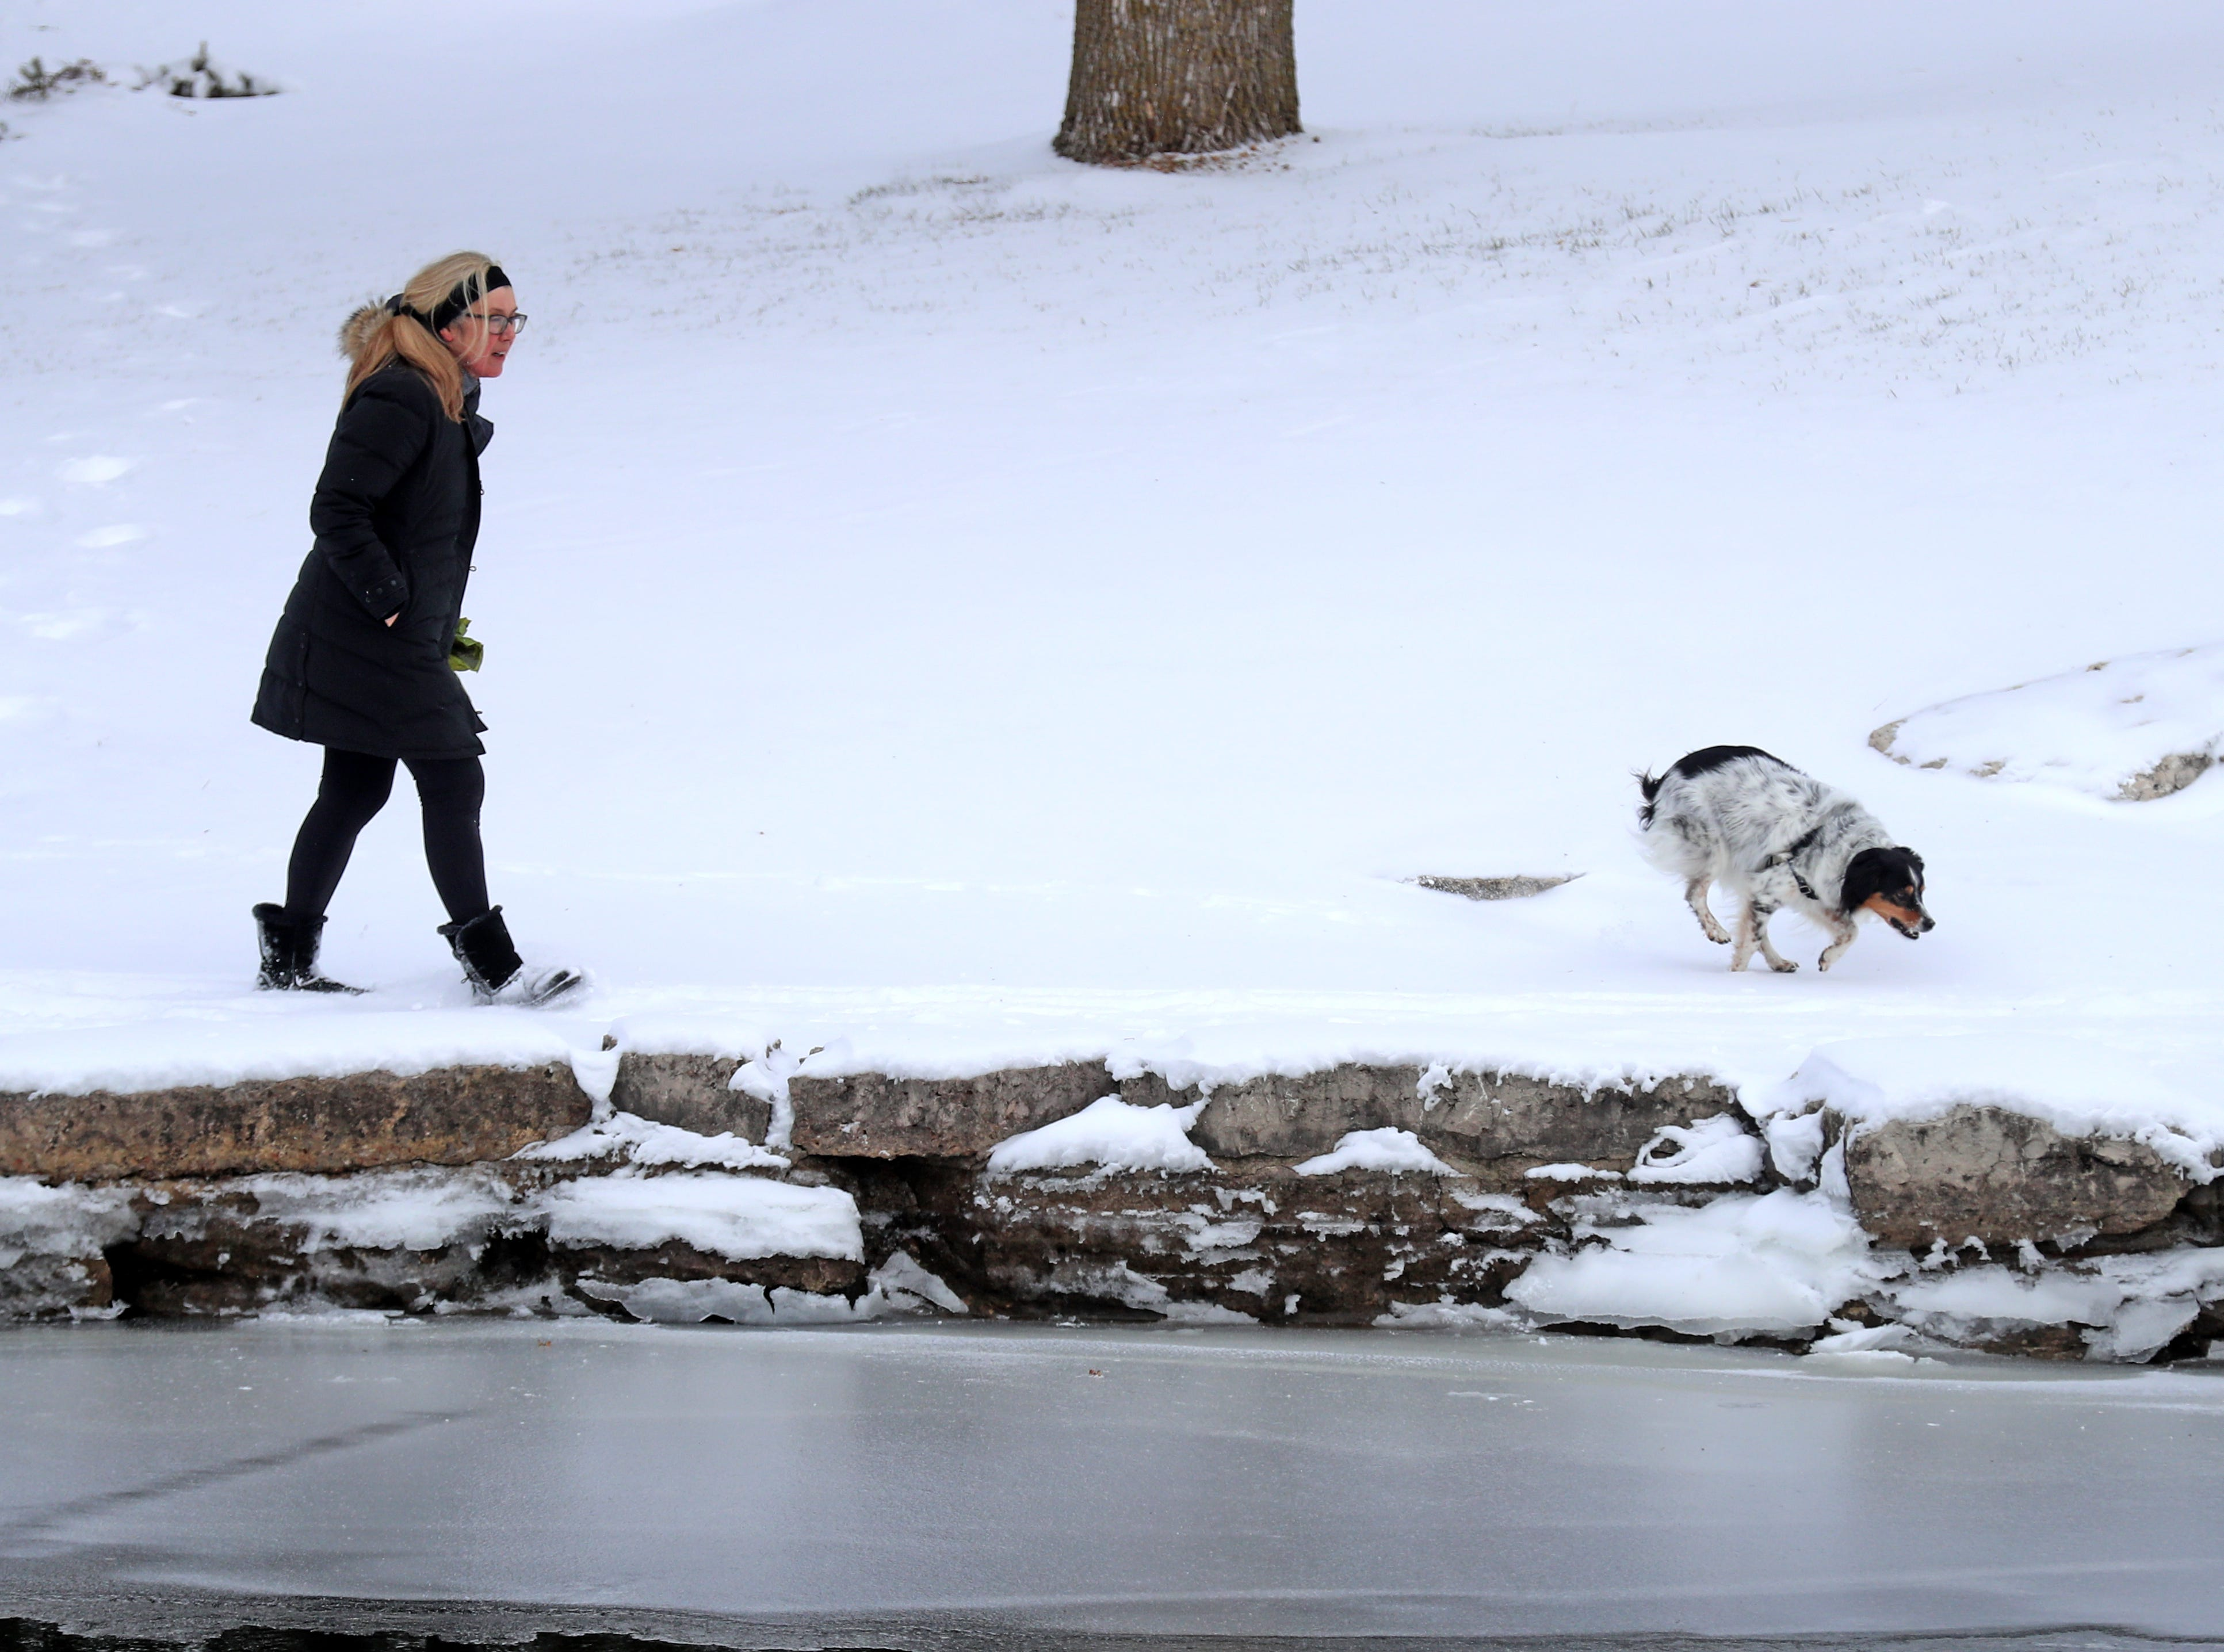 A snowy New Years Day greeted walkers and dogs alike in Voyaguer Park in De Pere, WIs Tuesday, January 1, 2019.